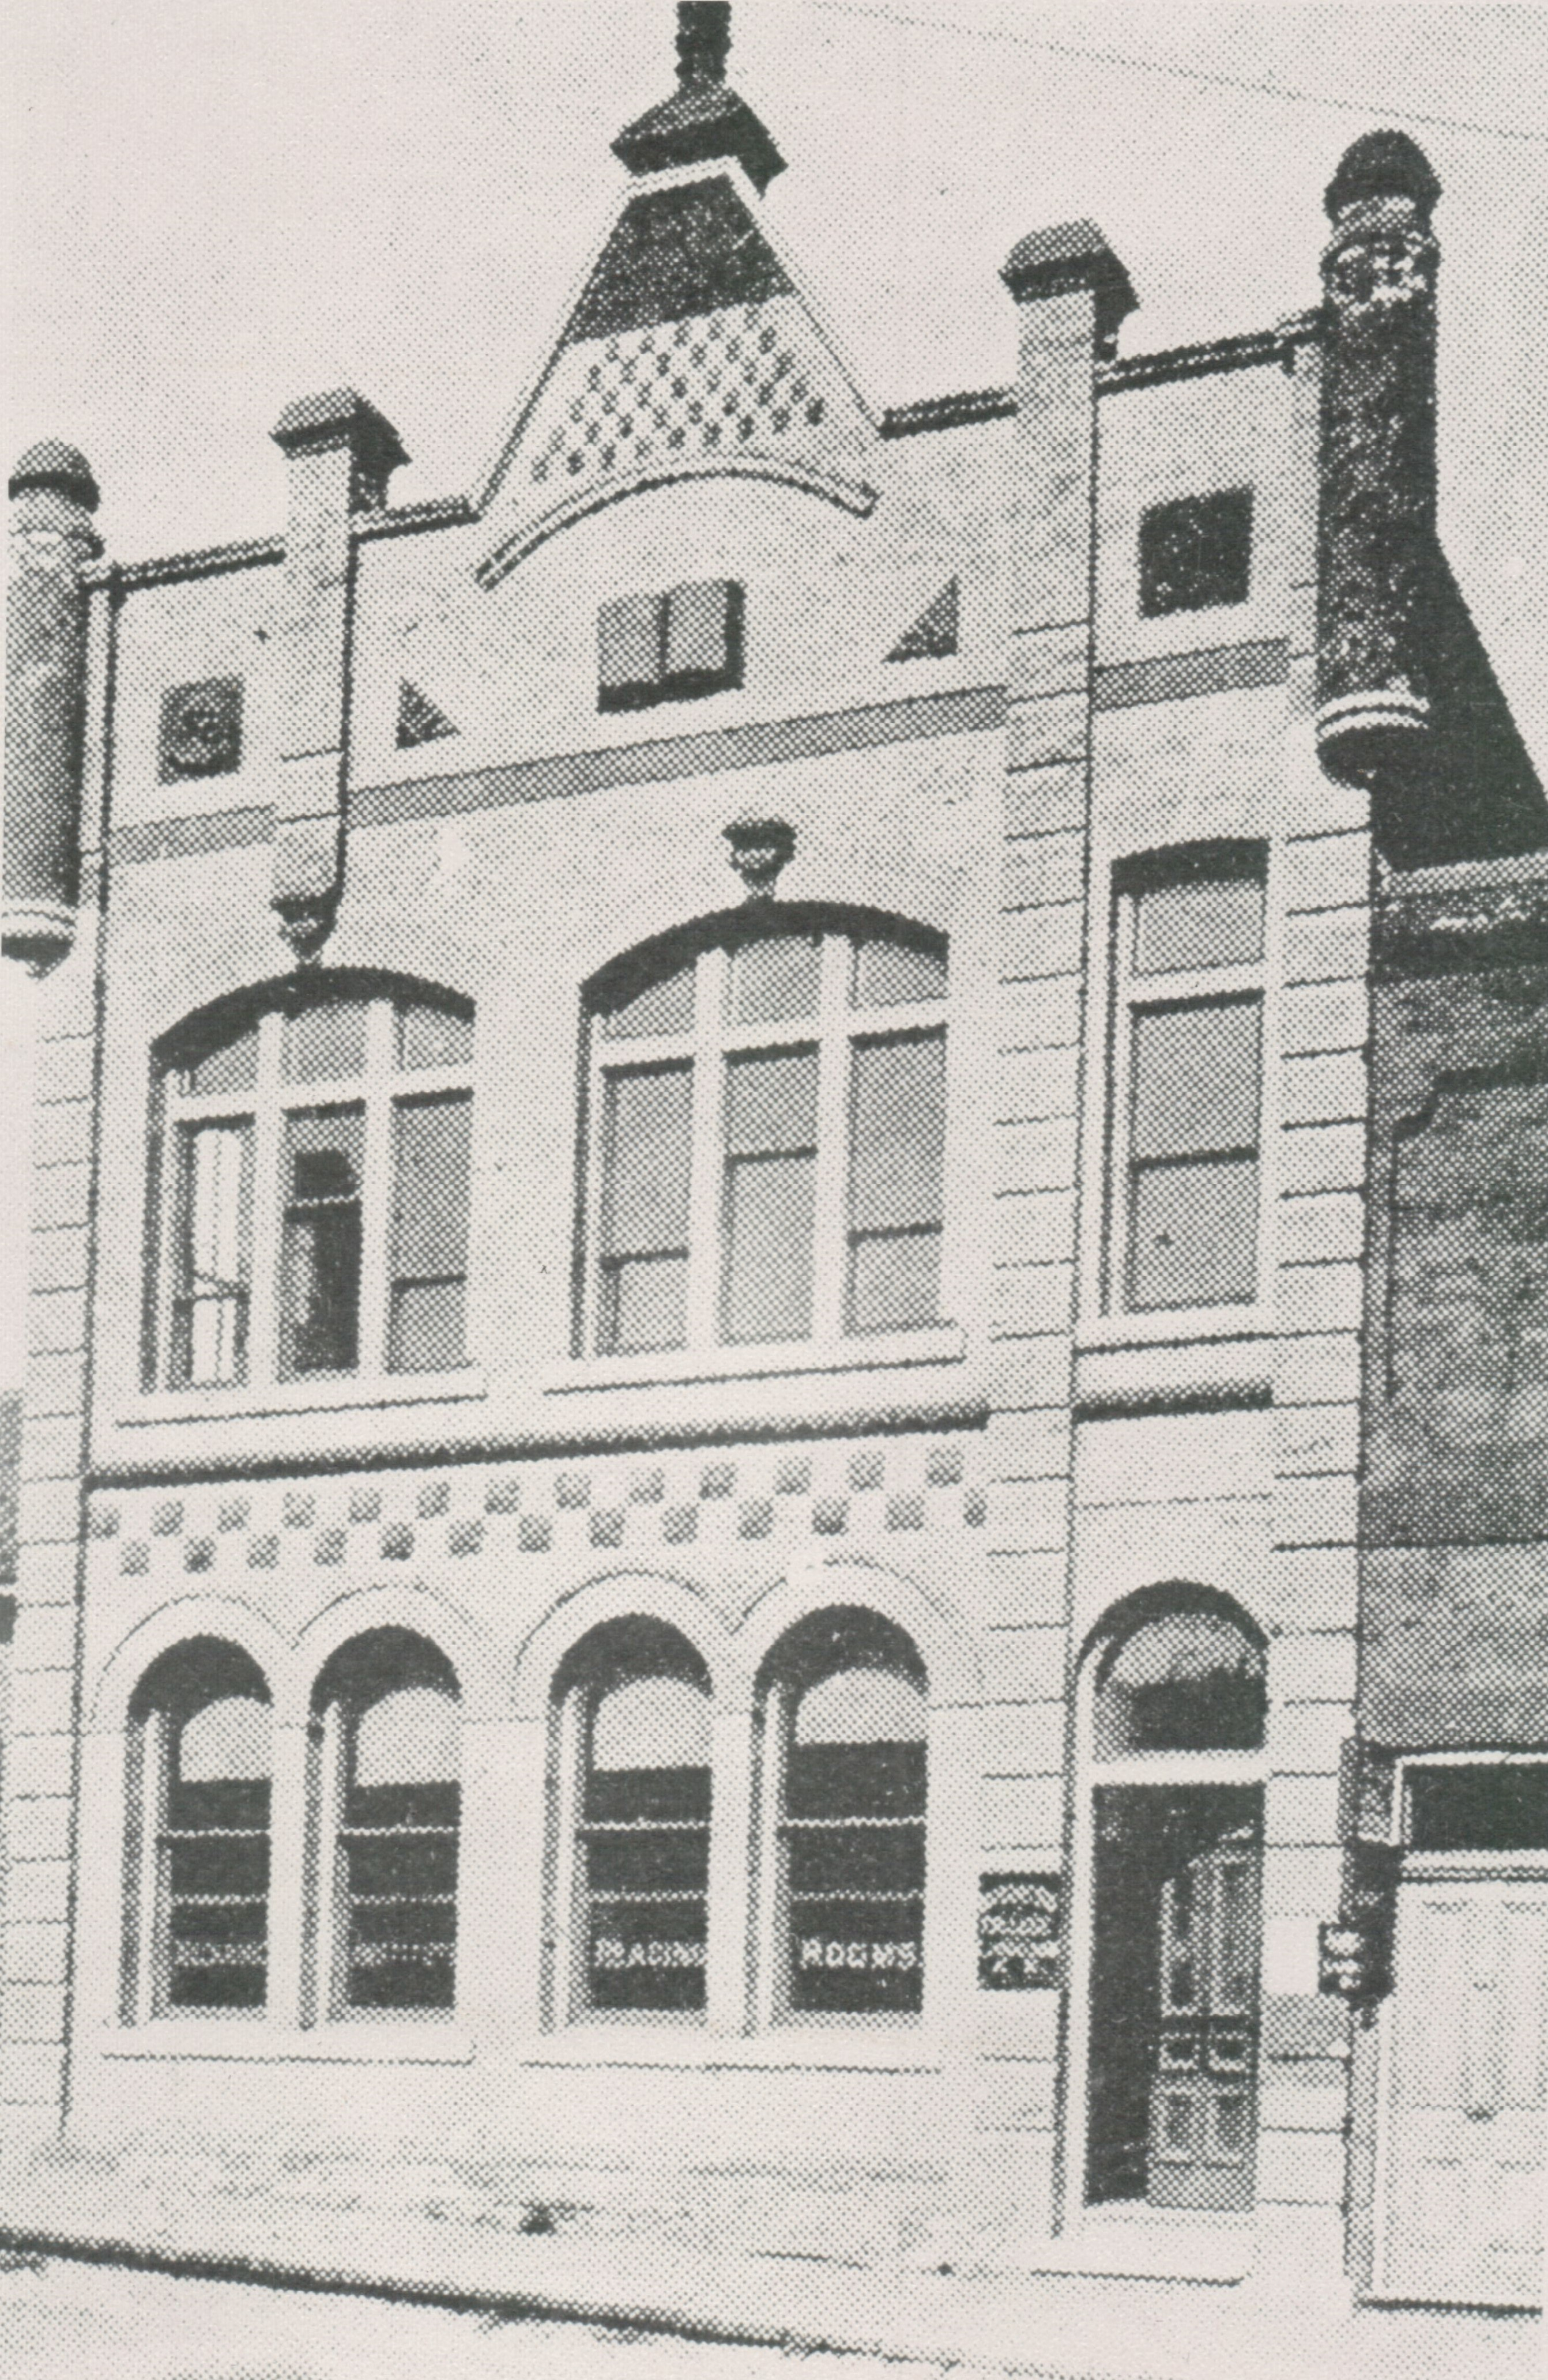 The Mechanics Institute was Barrie's first library system